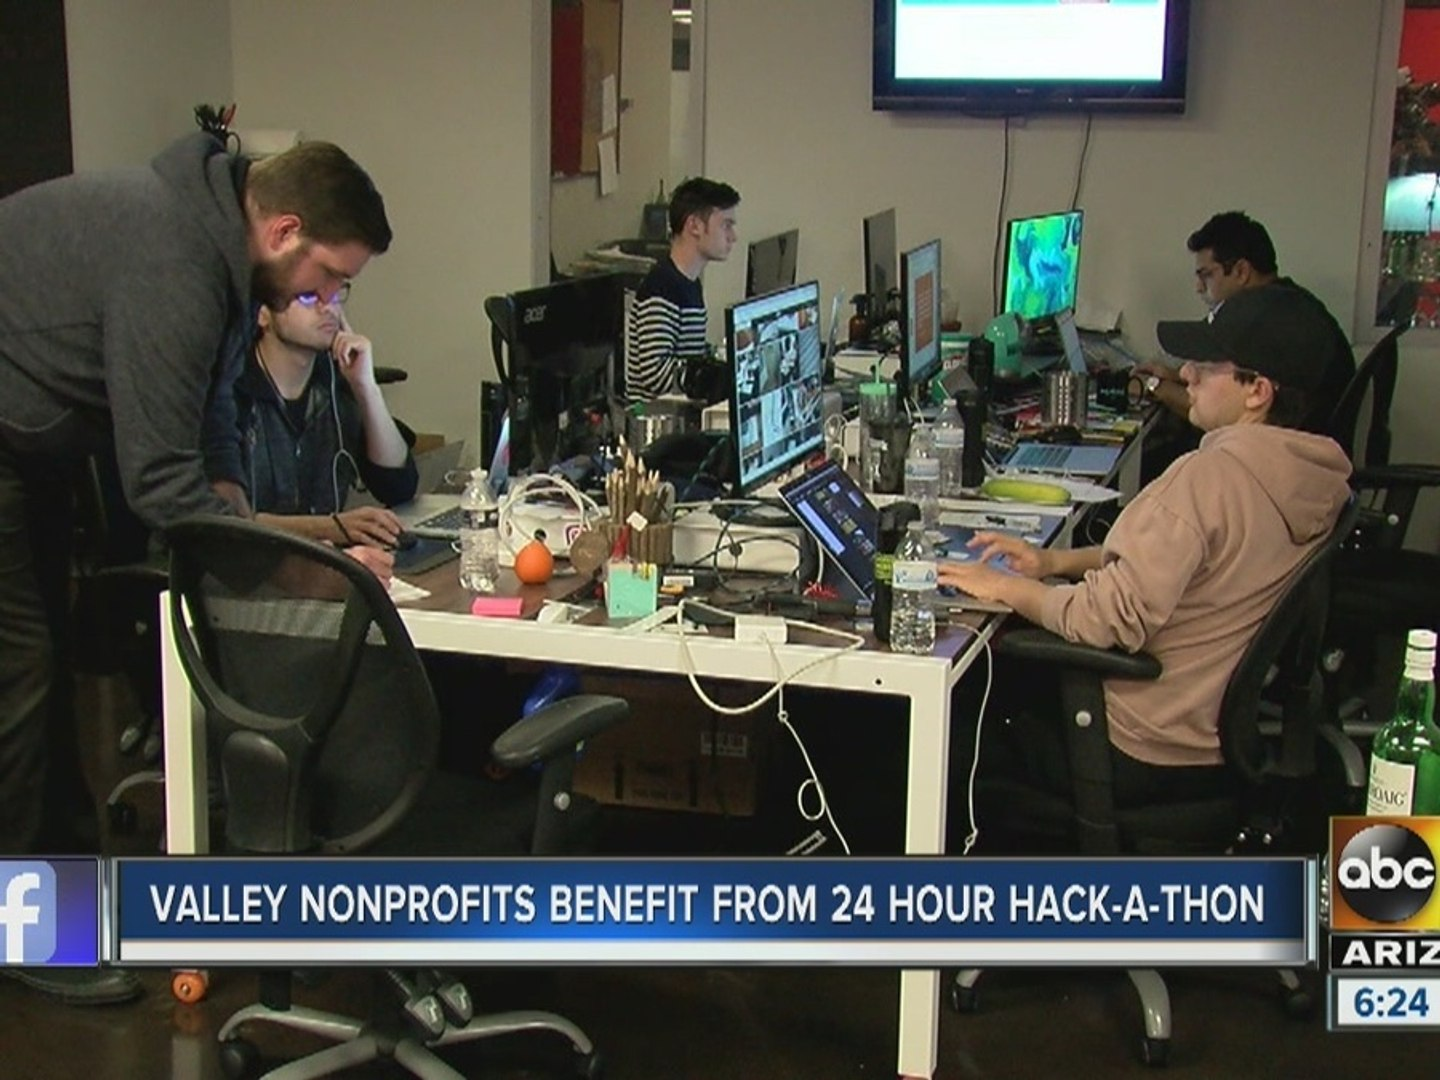 Valley non-profits benefit from 24-hour hack-a-thon in Phoenix